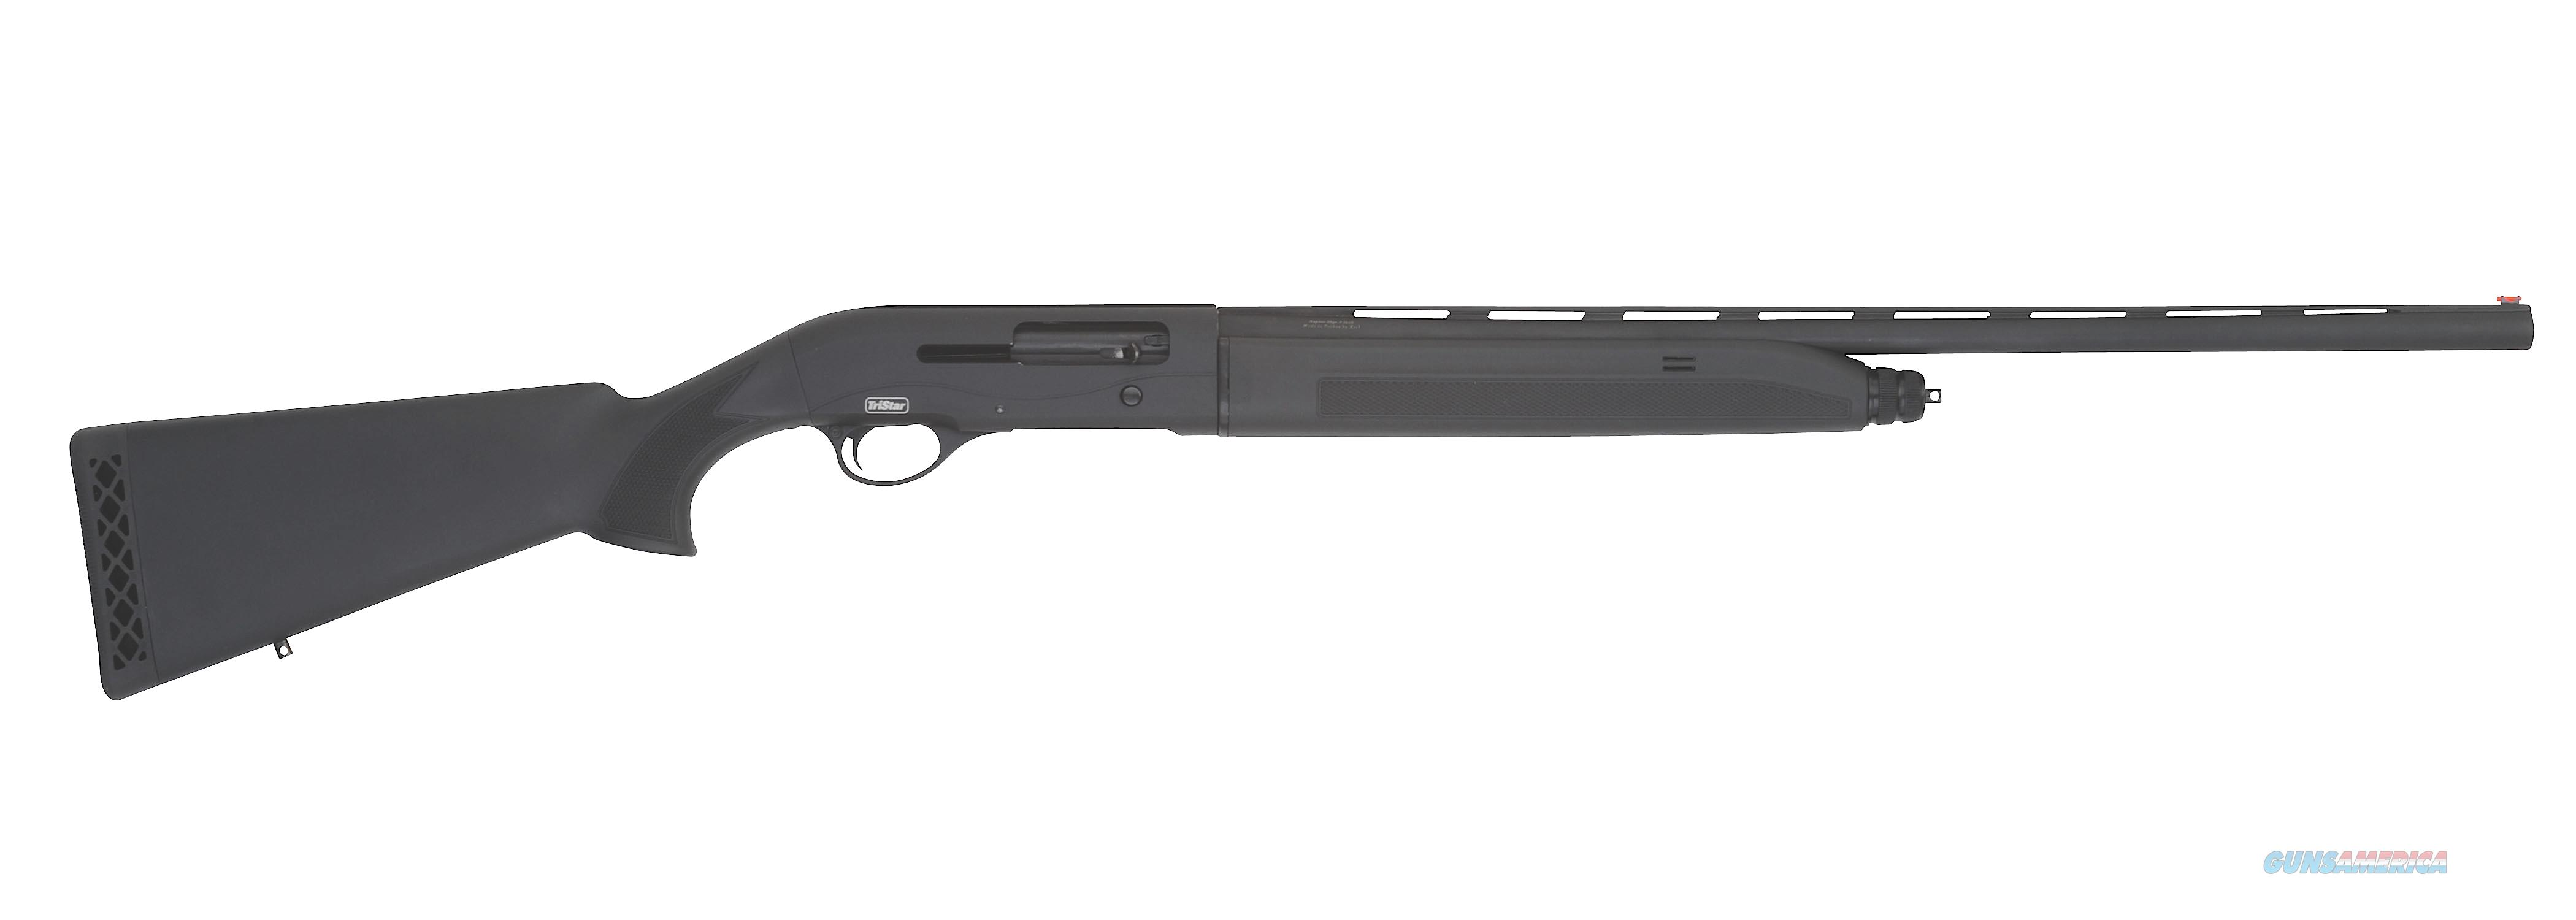 "TriStar 20204 Raptor Youth Semi-Automatic 20 Gauge 24"" 3"" Synthetic Black Stk Steel  Guns > Shotguns > Tristar Shotguns"